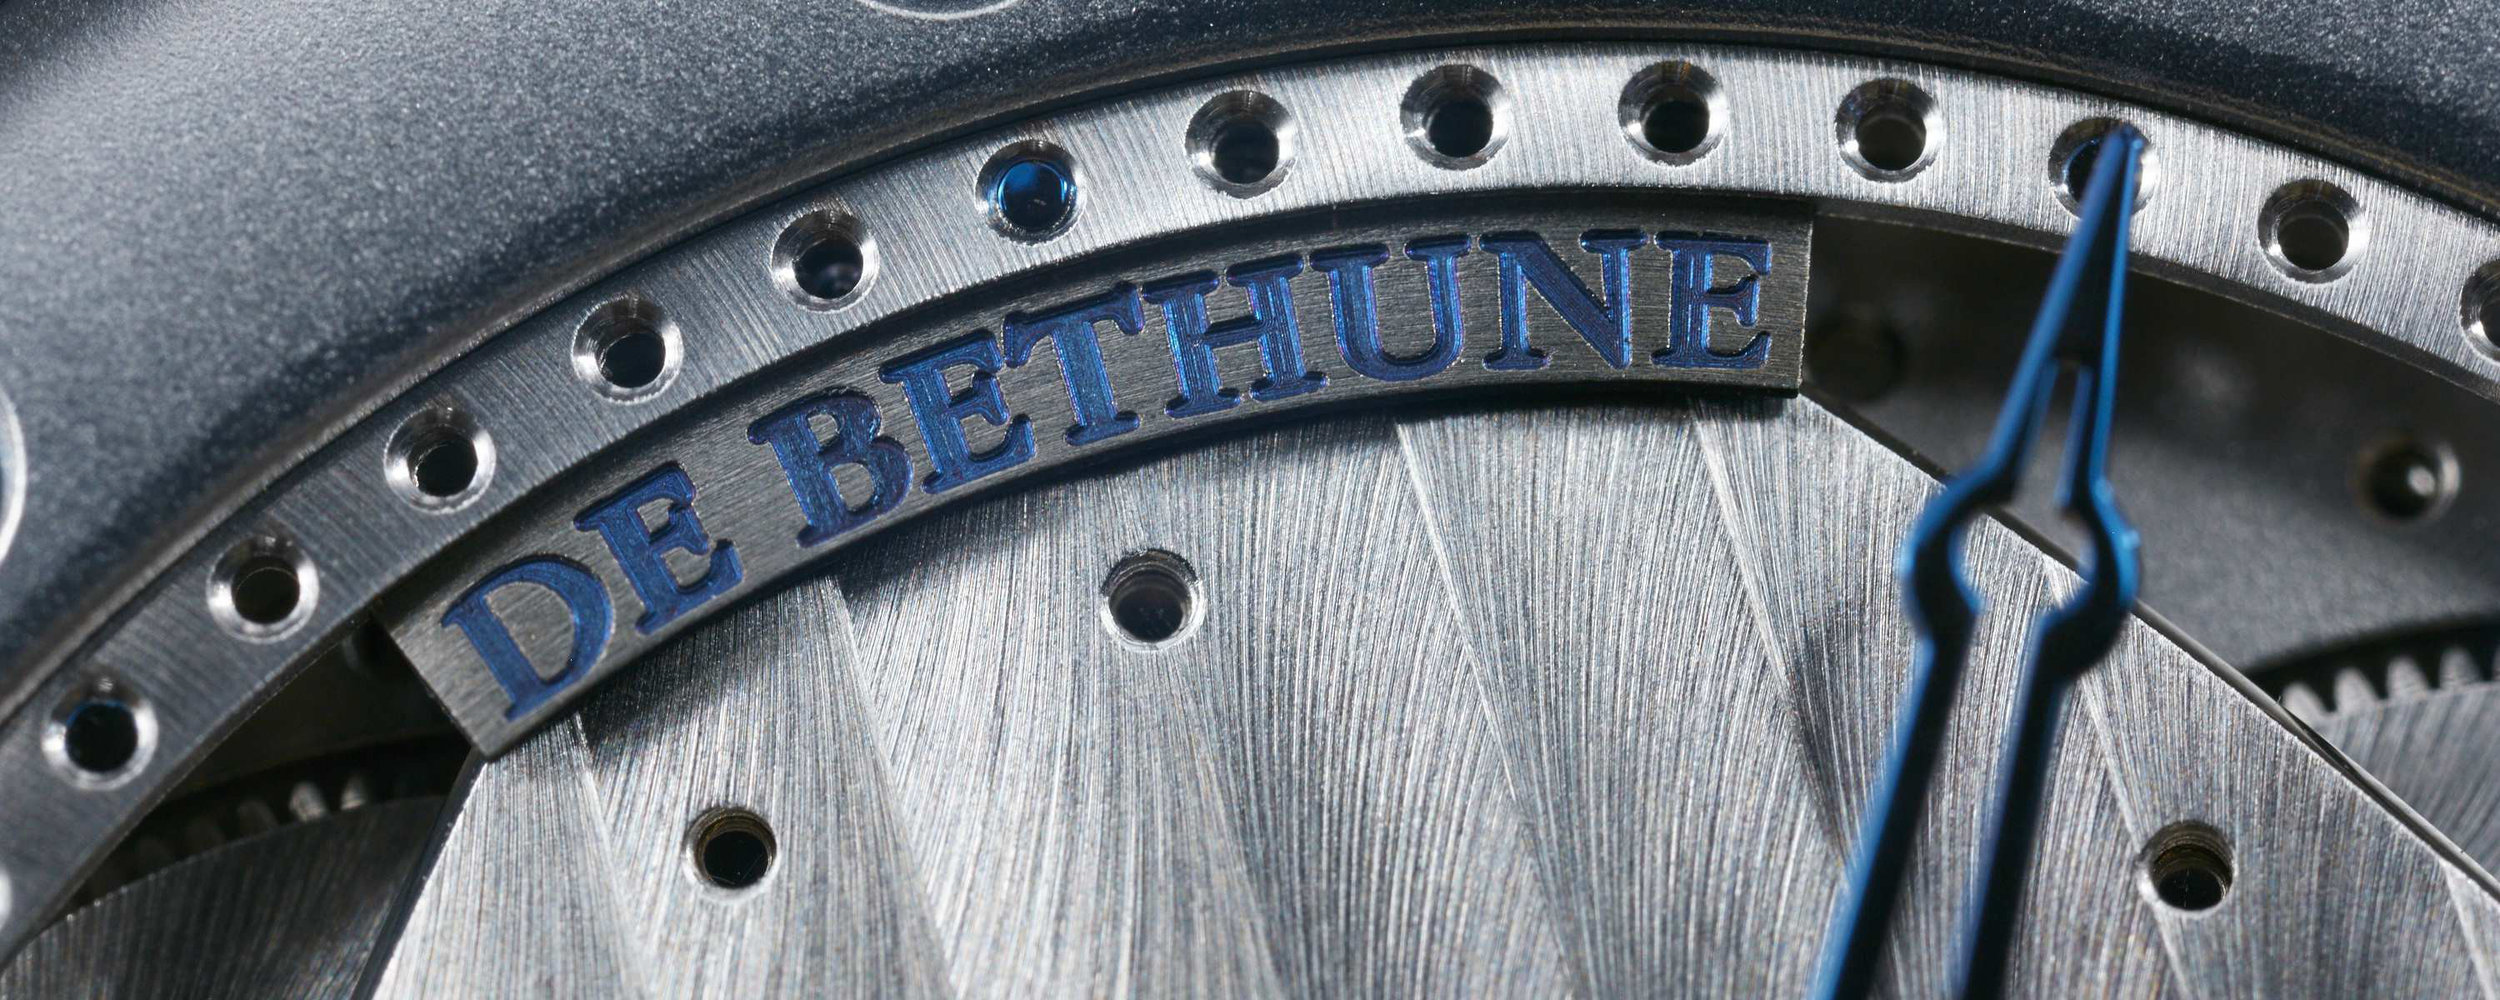 HEADERS_DeBethune_05_site.jpg